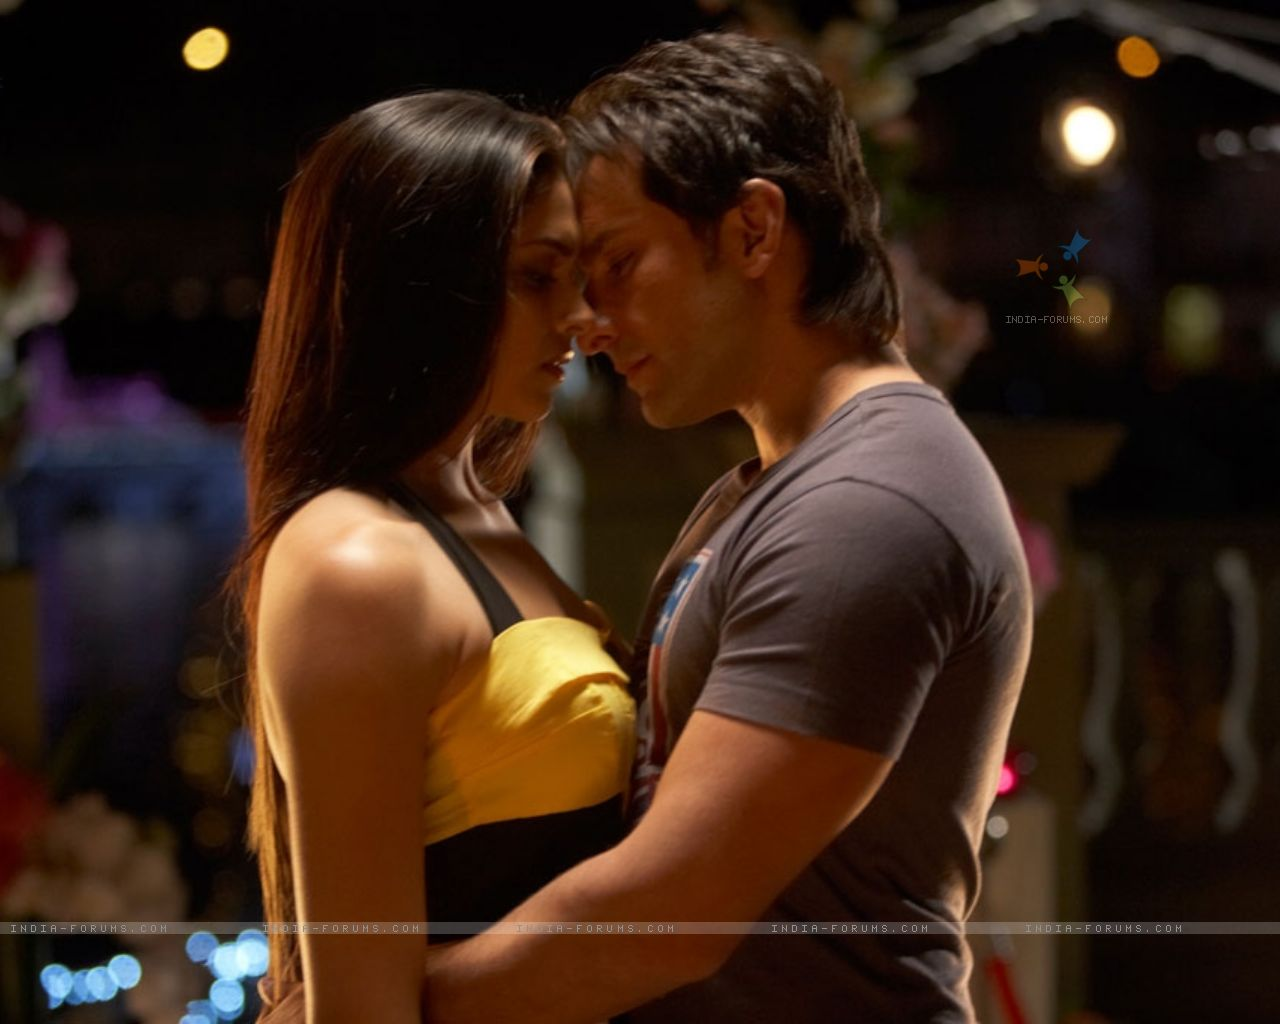 http://3.bp.blogspot.com/-qNdSt76BUhA/UNHcjYCq_mI/AAAAAAAADgM/AVs2nArpQPk/s1600/31353-saif-and-deepika-romantic-scene-in-love-aaj-kal-movie.jpg